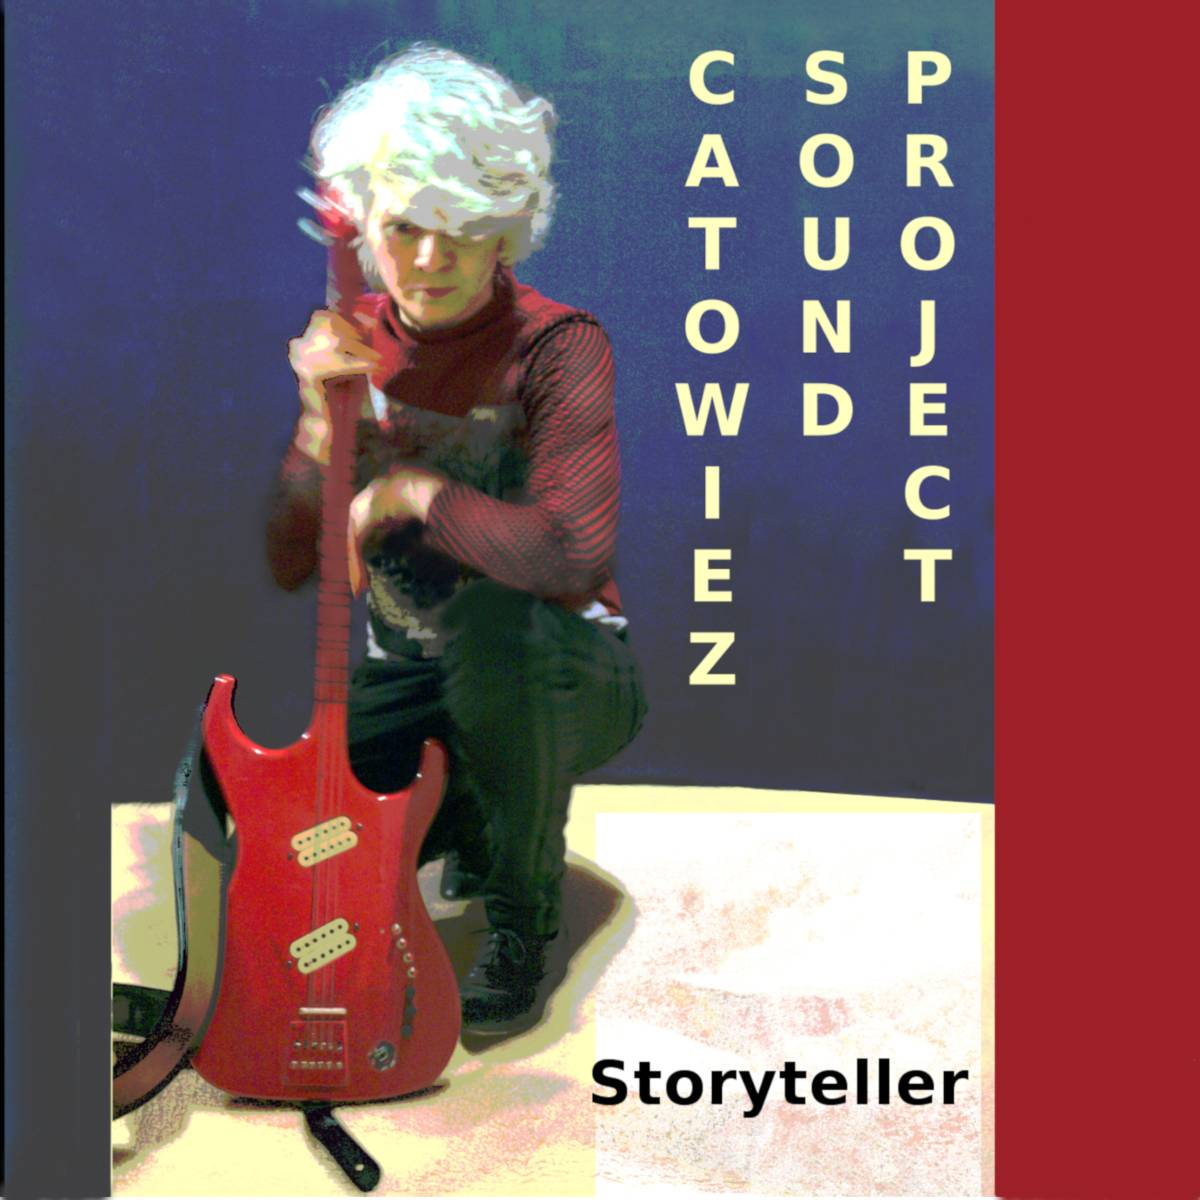 Catowiez Sound Project - Storyteller